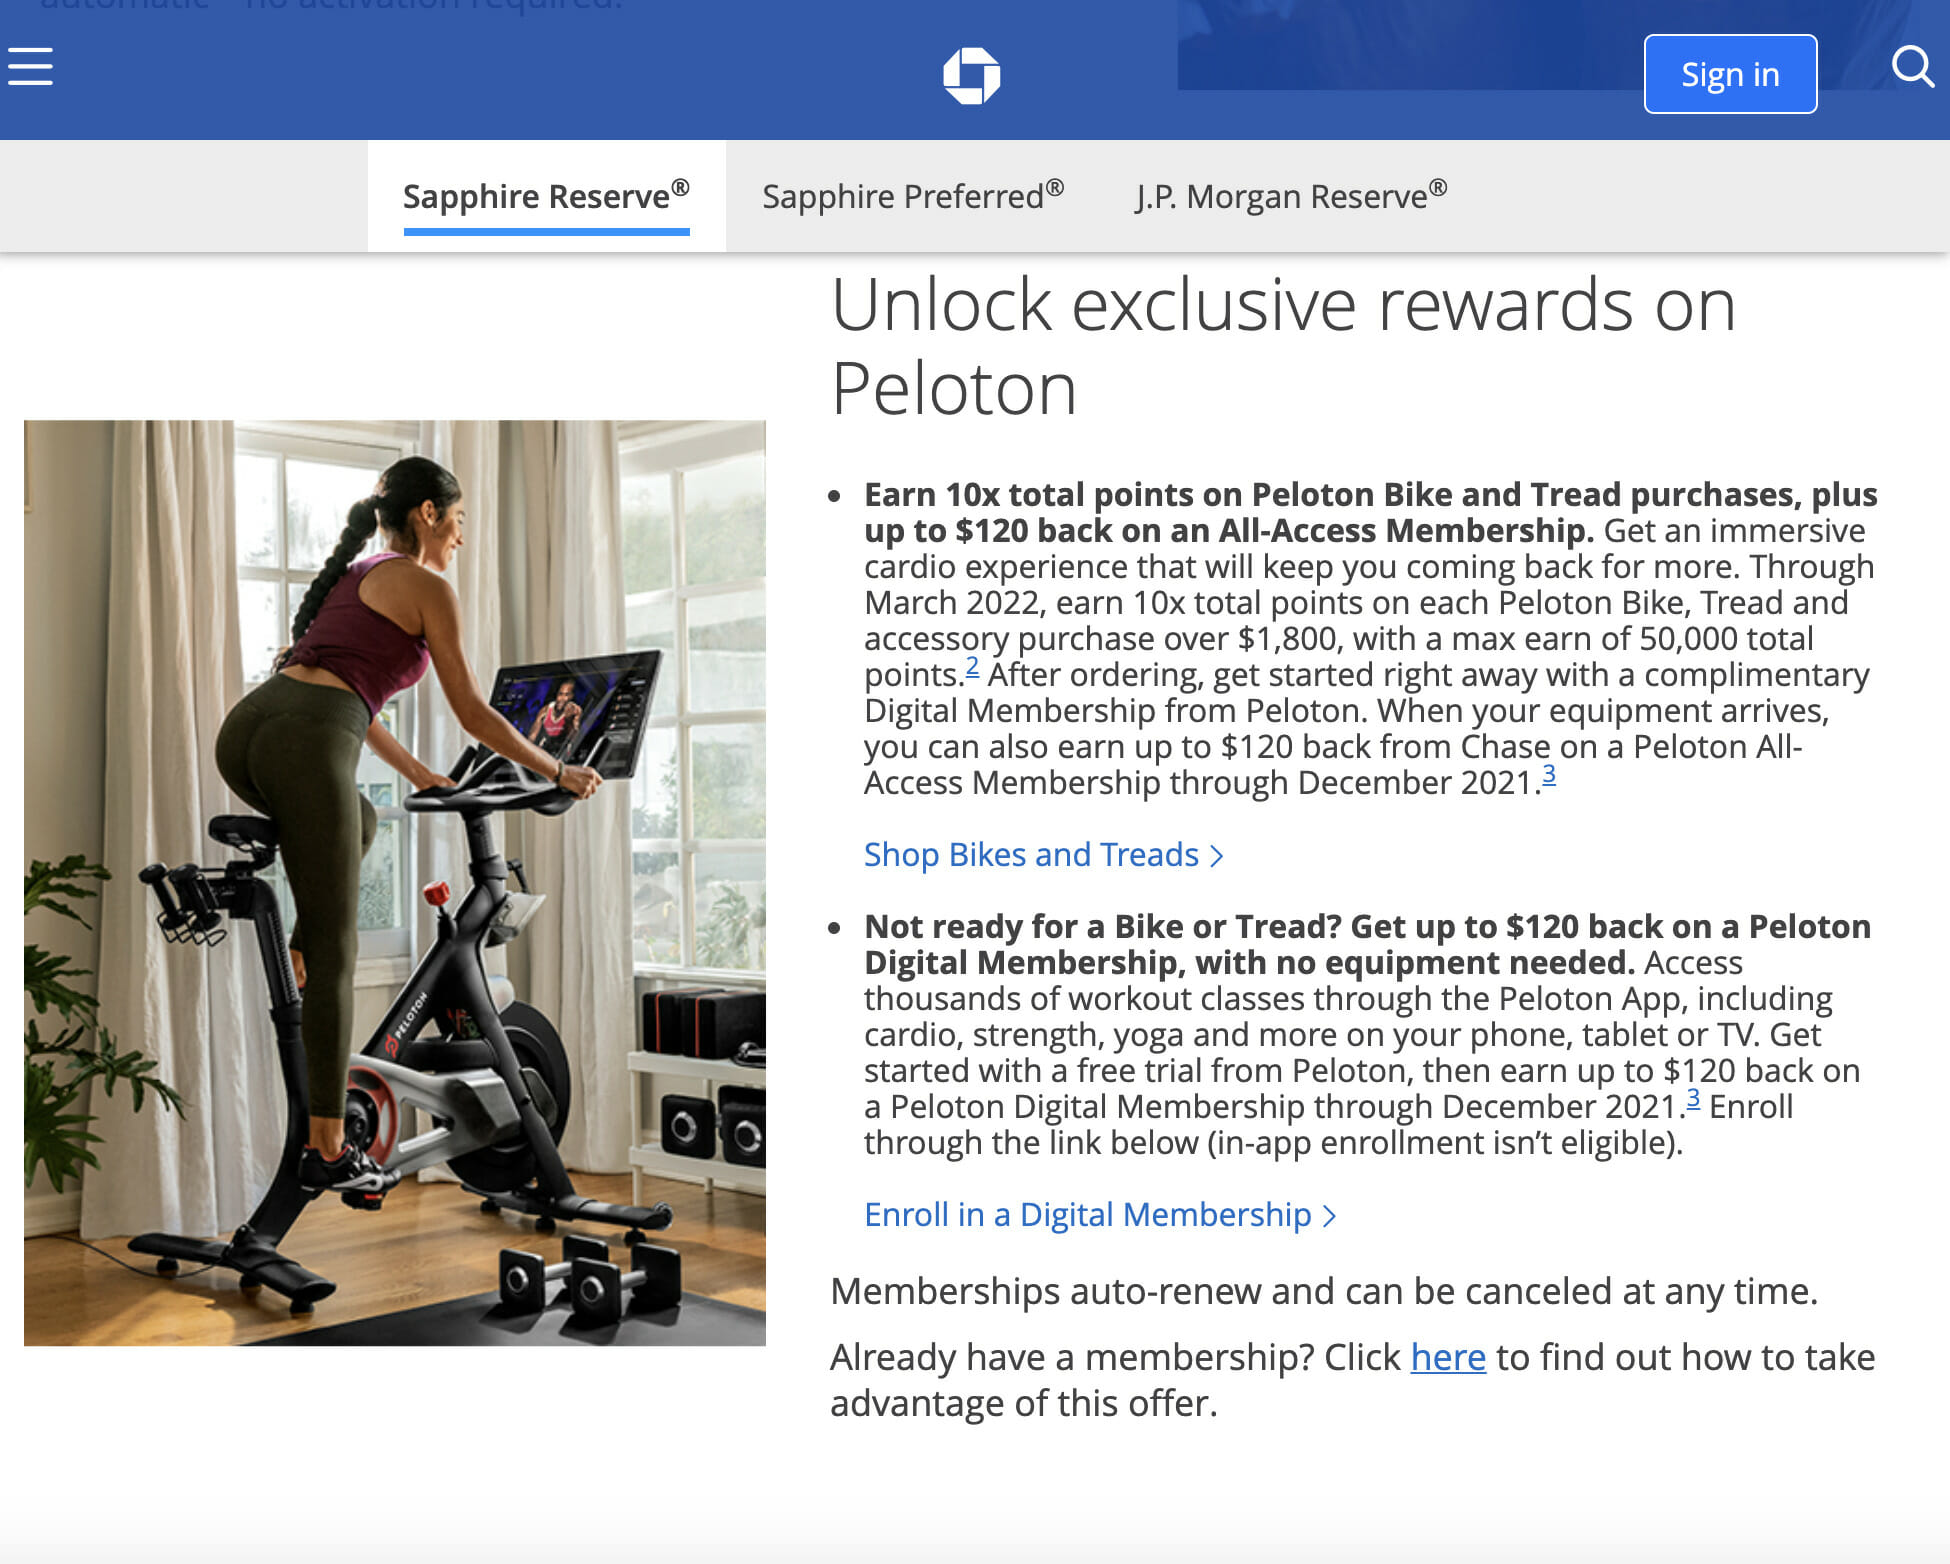 Peloton & Chase have announced the Chase Sapphire Point Accelerator Program with bonus points for Chase cardholders who purchase Peloton hardware.